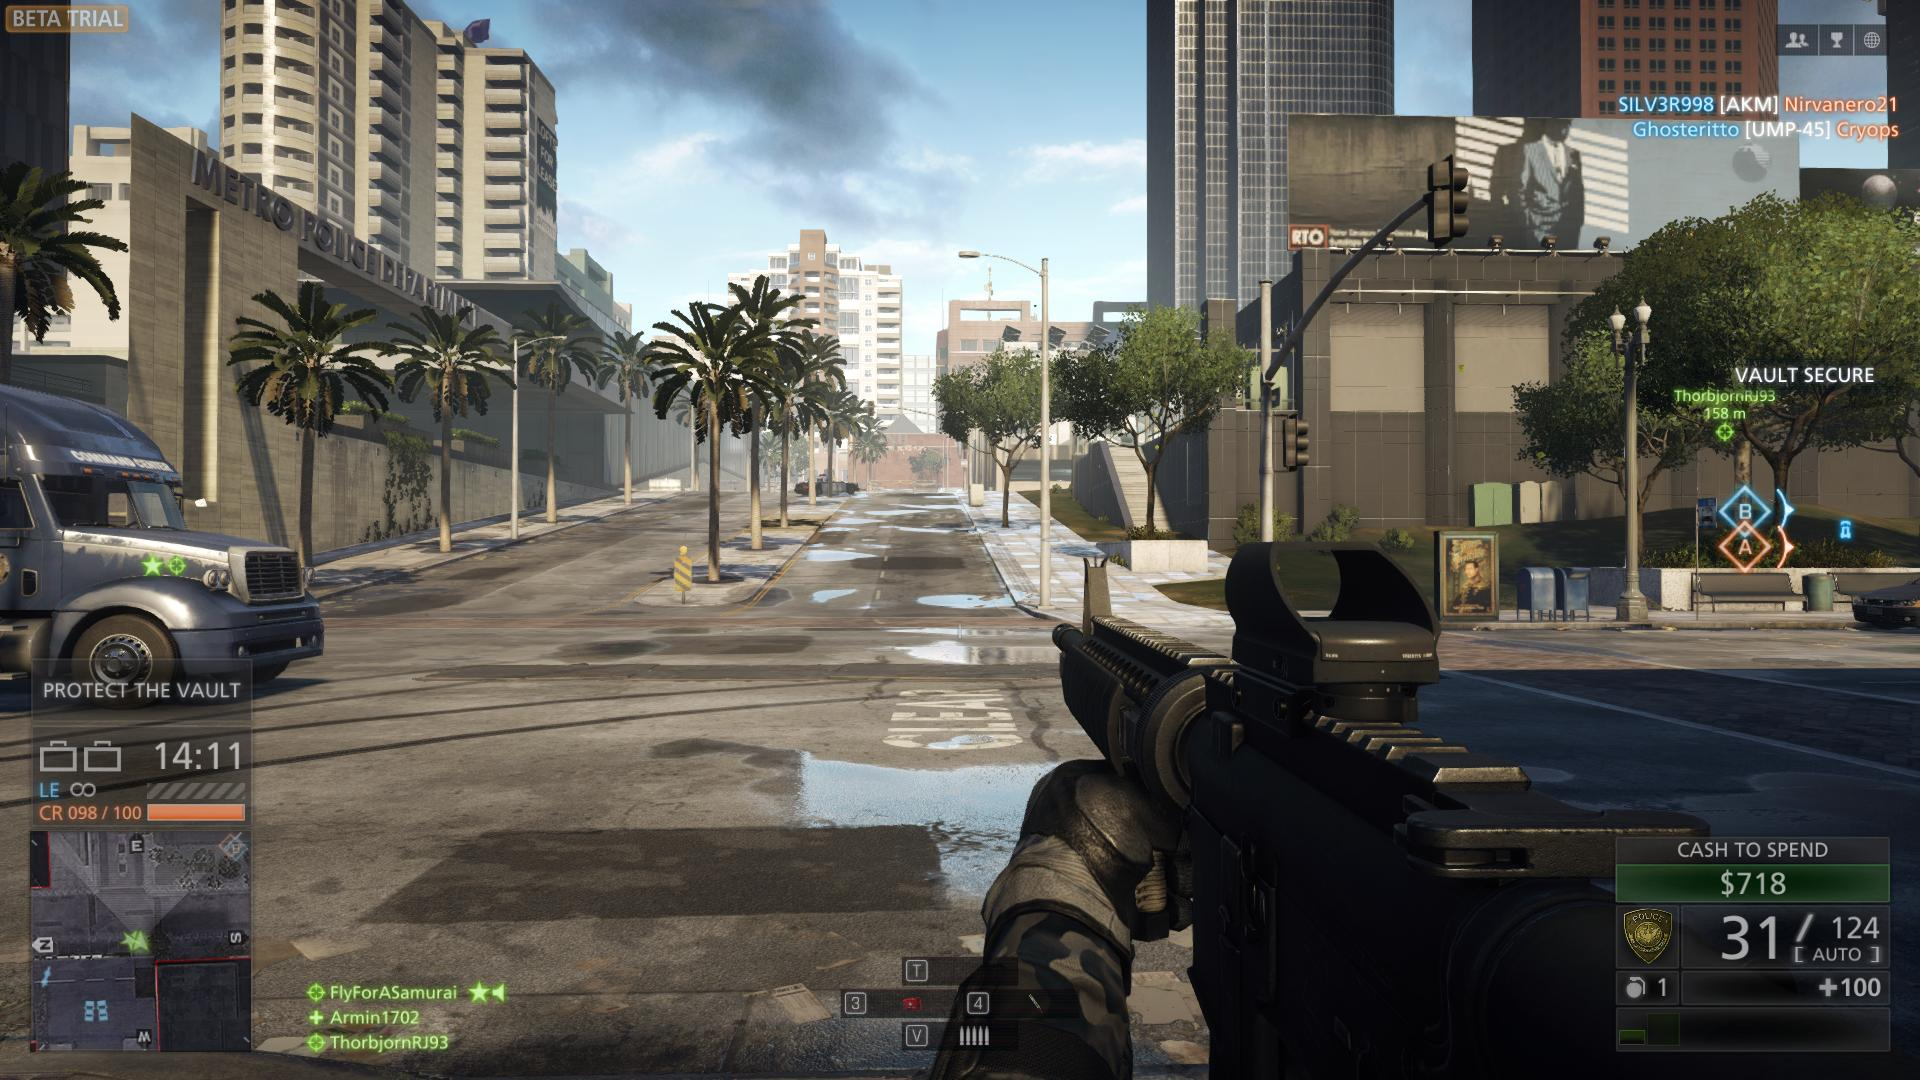 Battlefield hardline pc game download full version free.